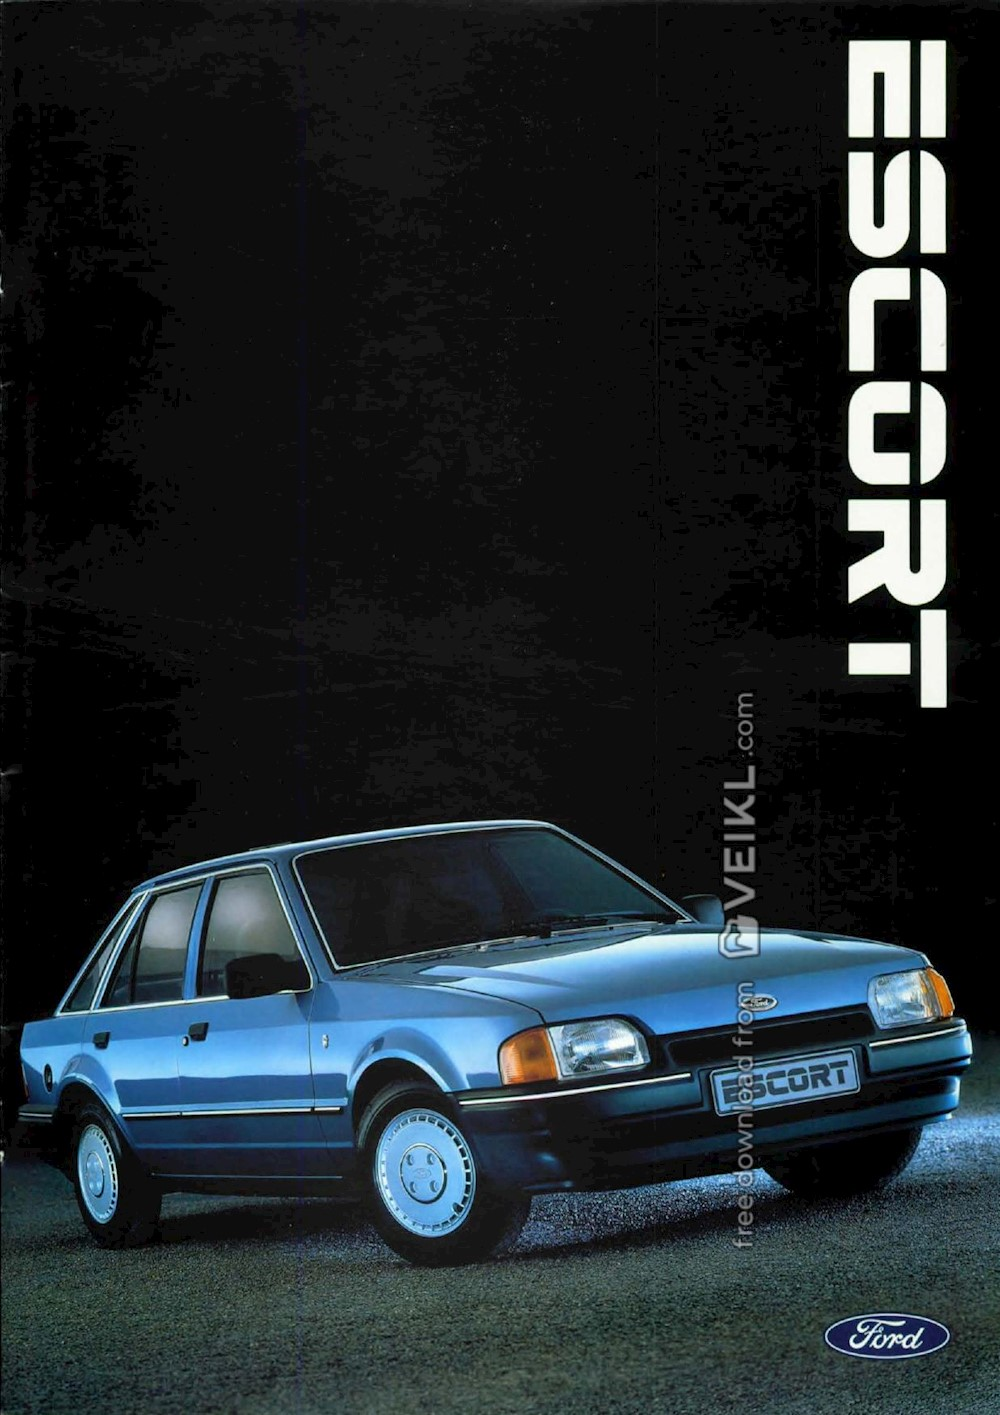 Ford Escort Brochure 1987 NL